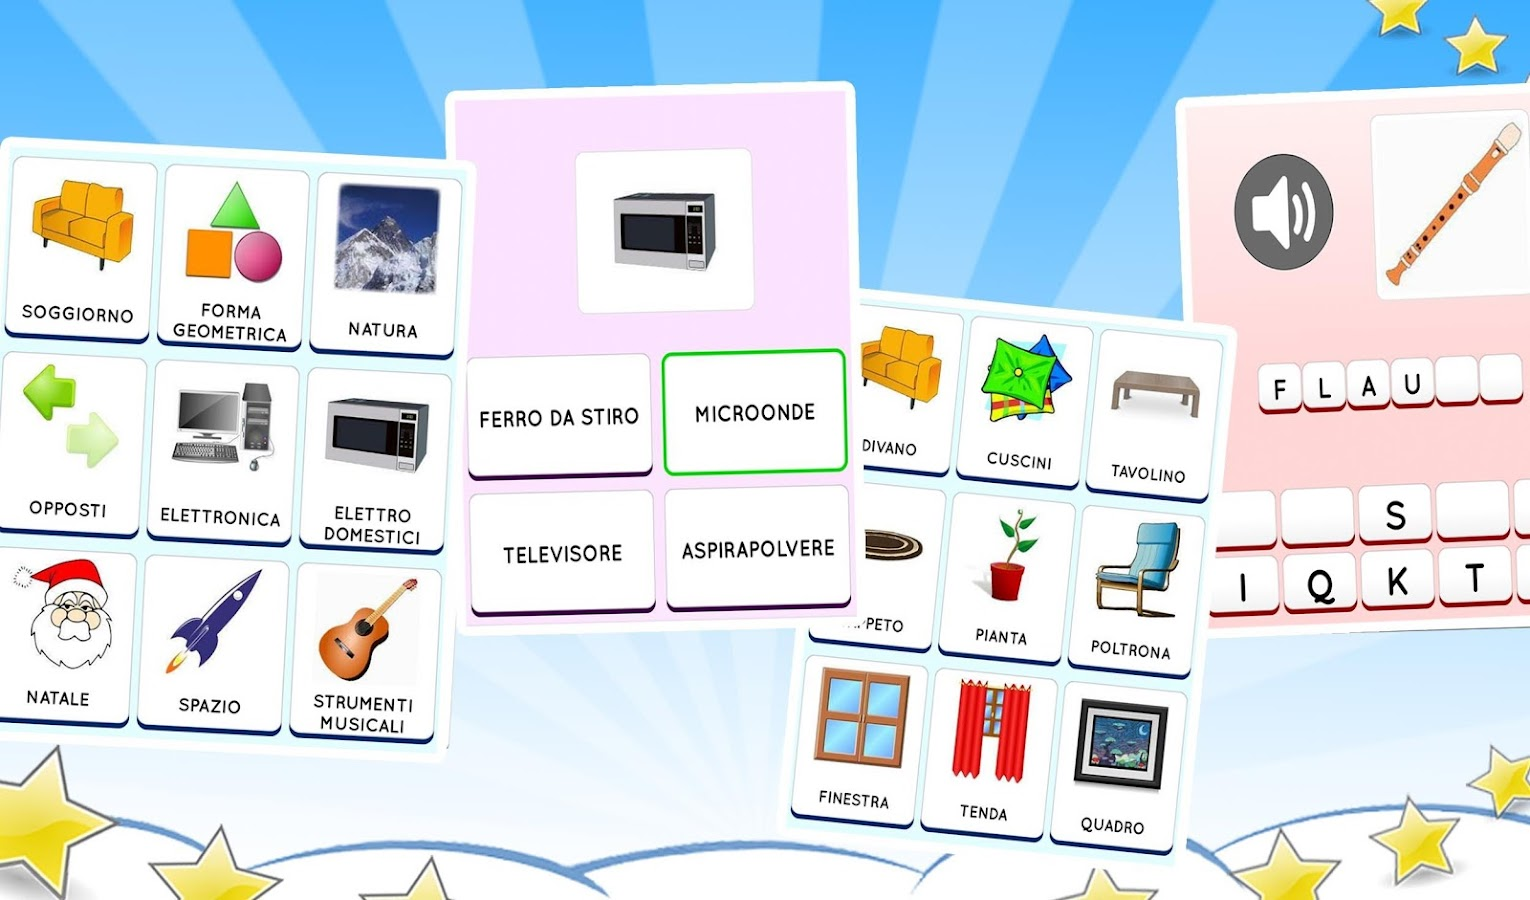 More than 700 FREE Italian games and activities - hello-world